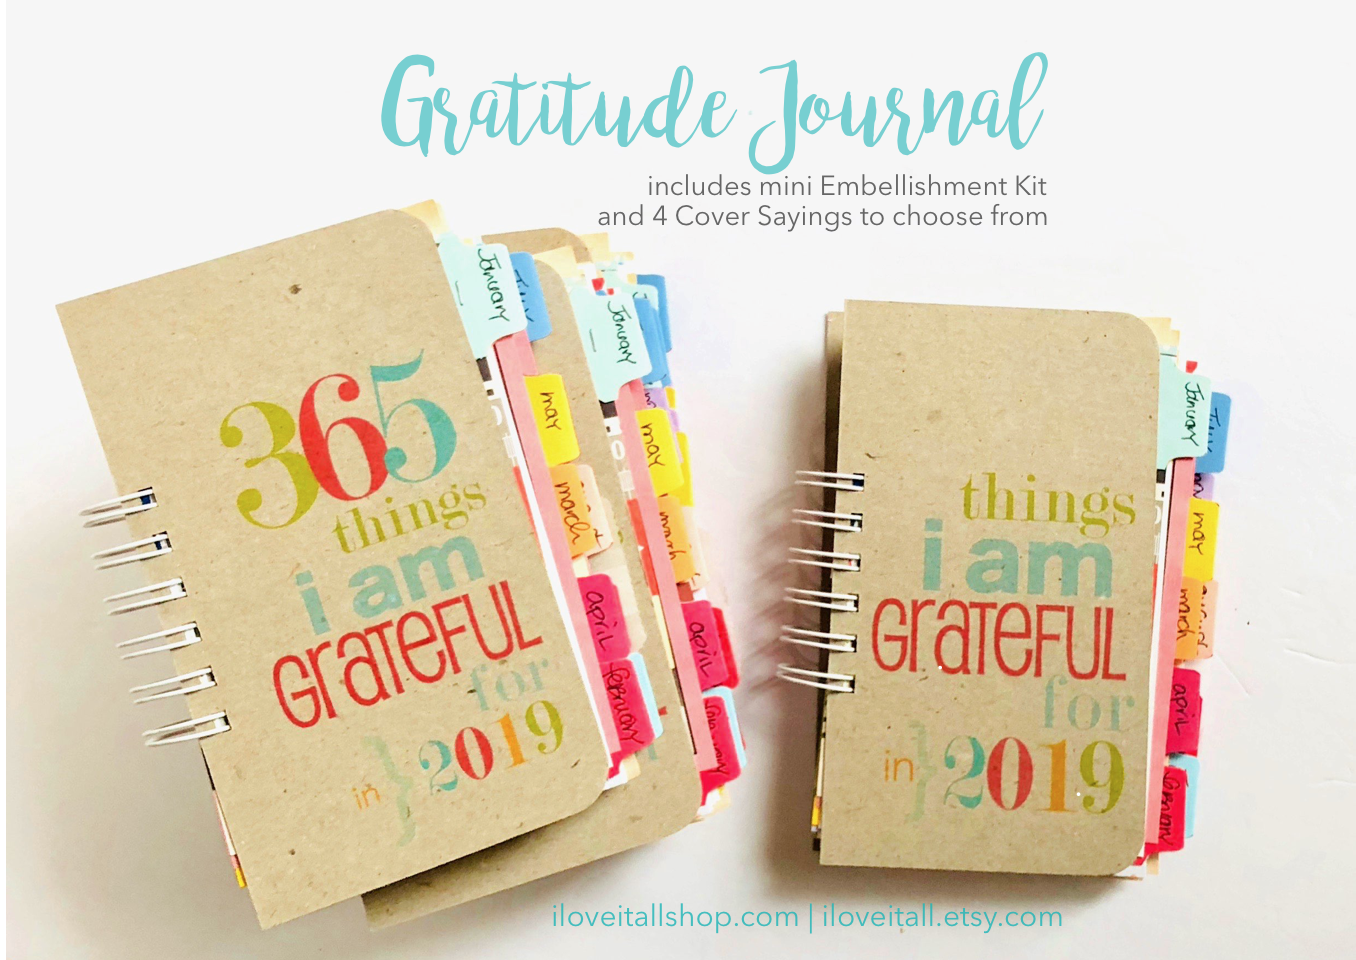 #2019 Gratitude Journal #gratitude #journal #happy life #joy #happiness #thankful #thankfulness #grateful